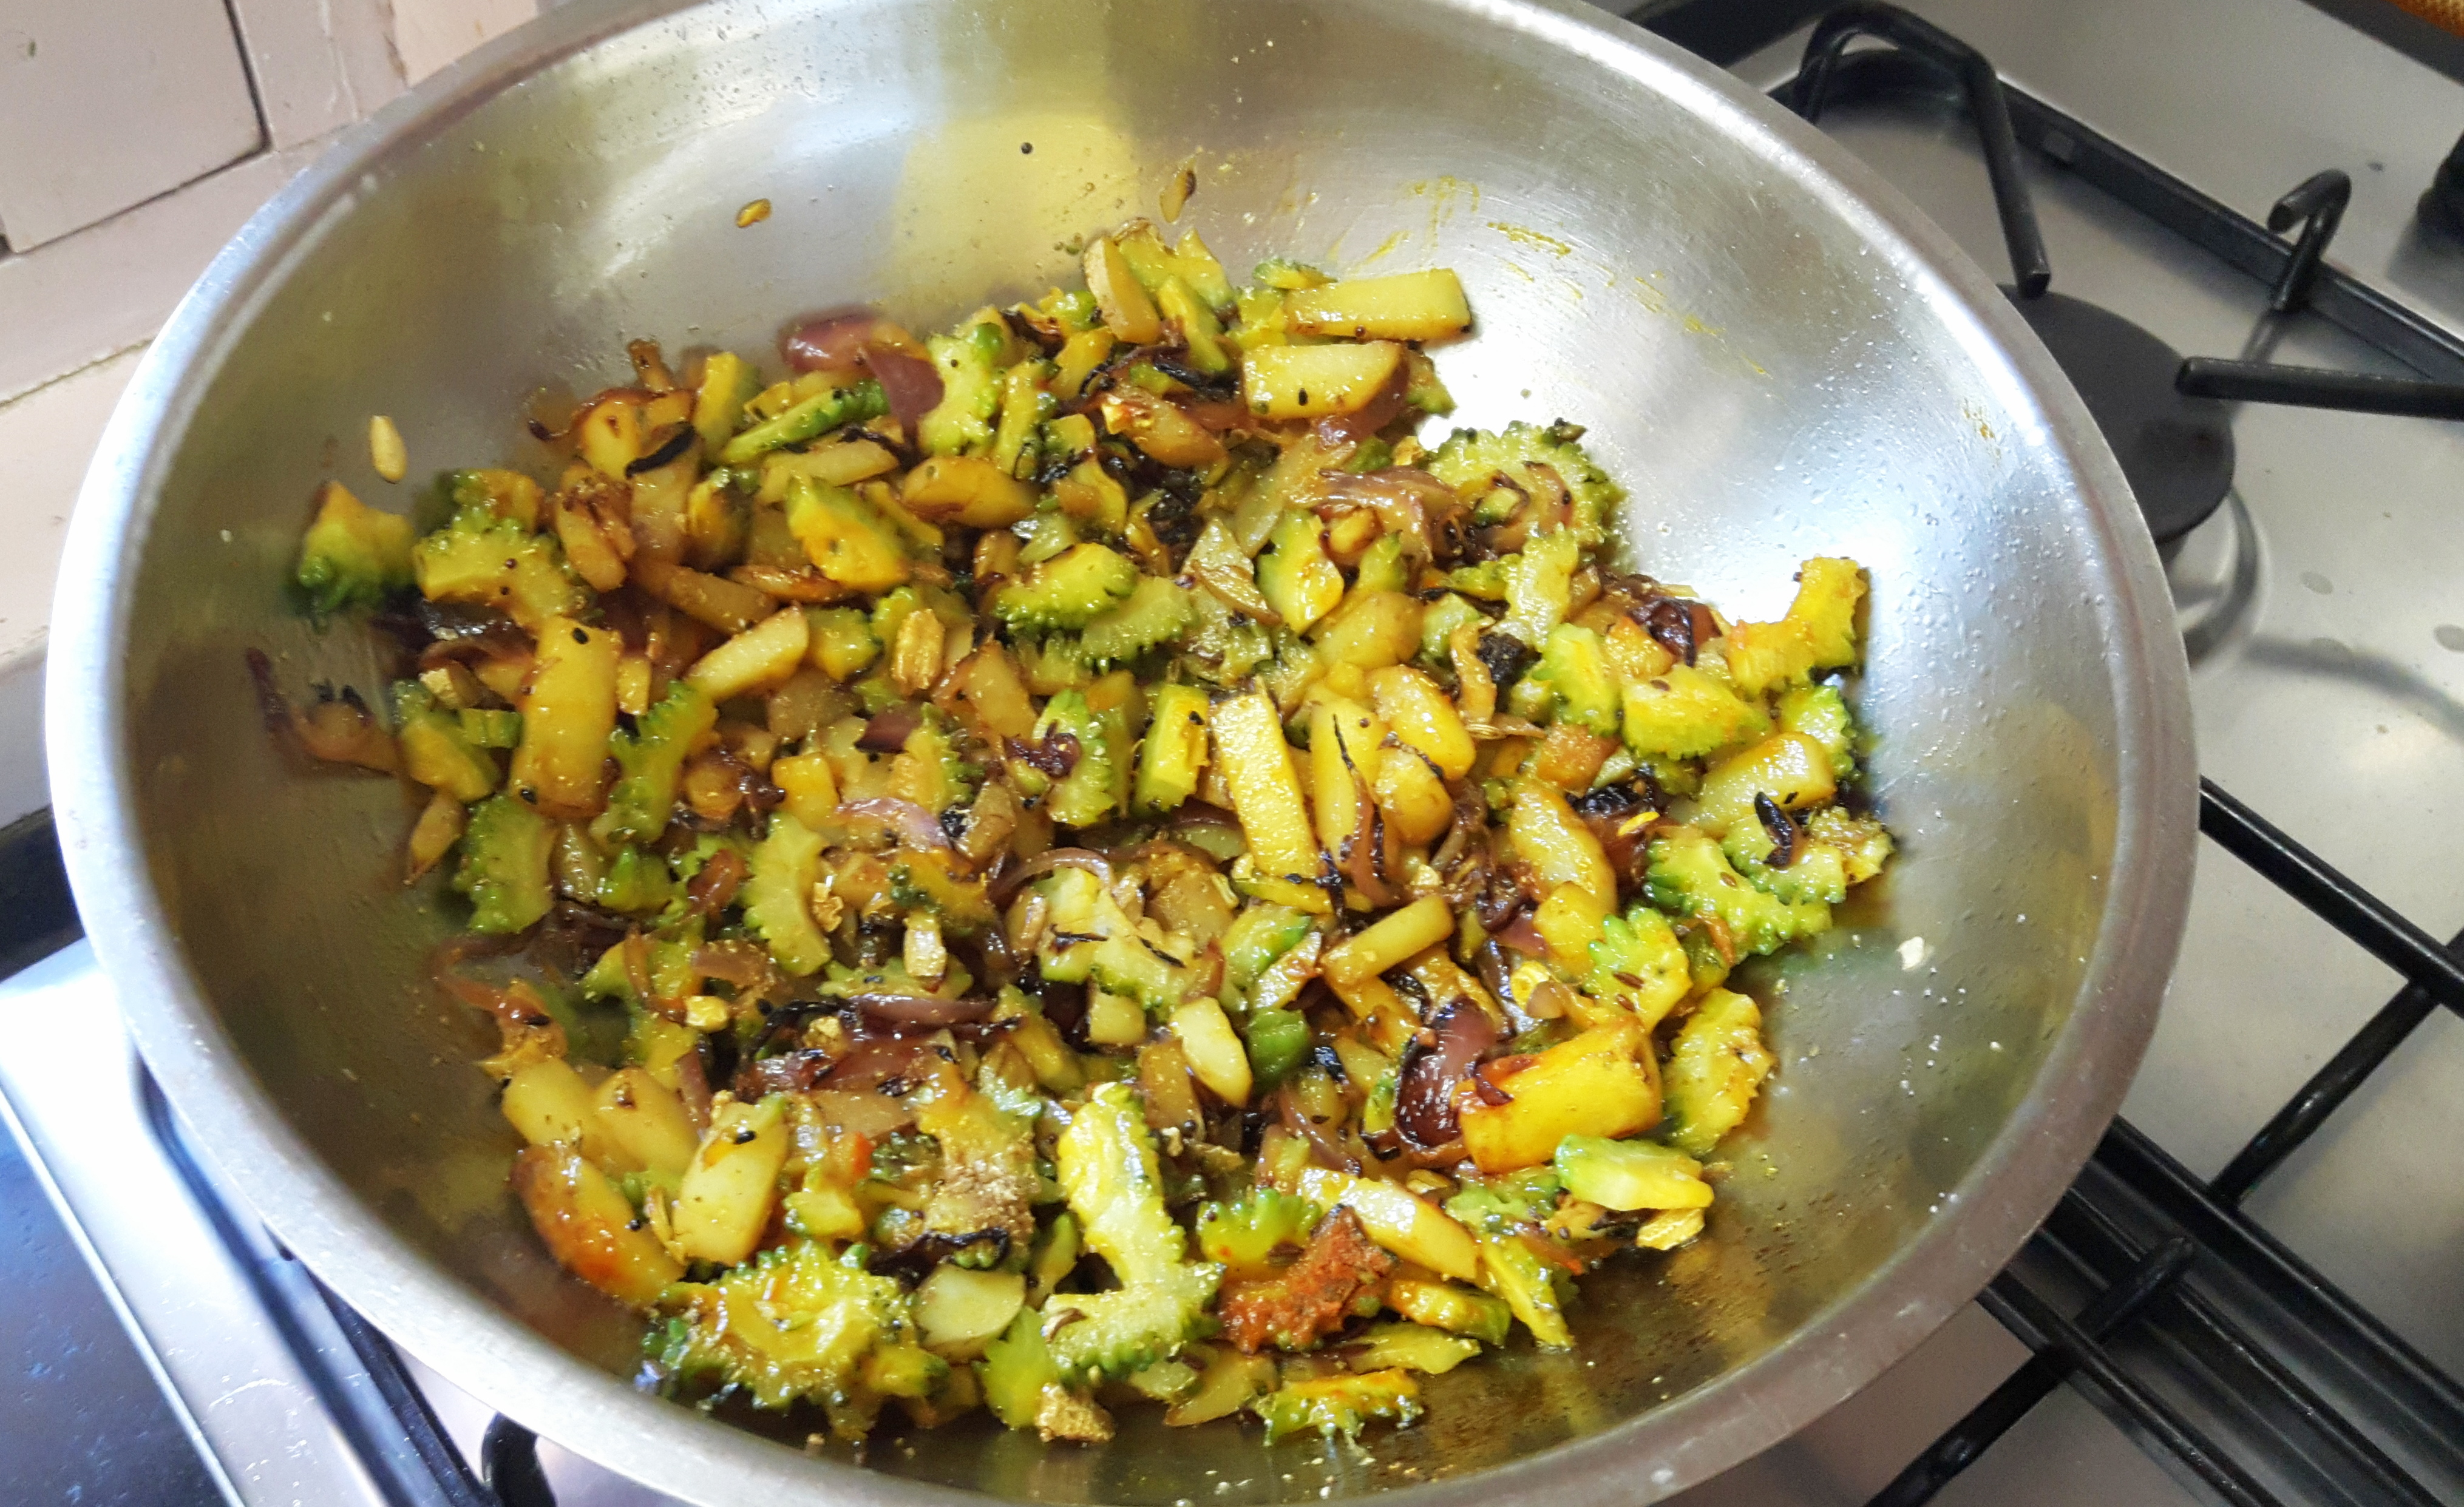 Fry till vegetables are done